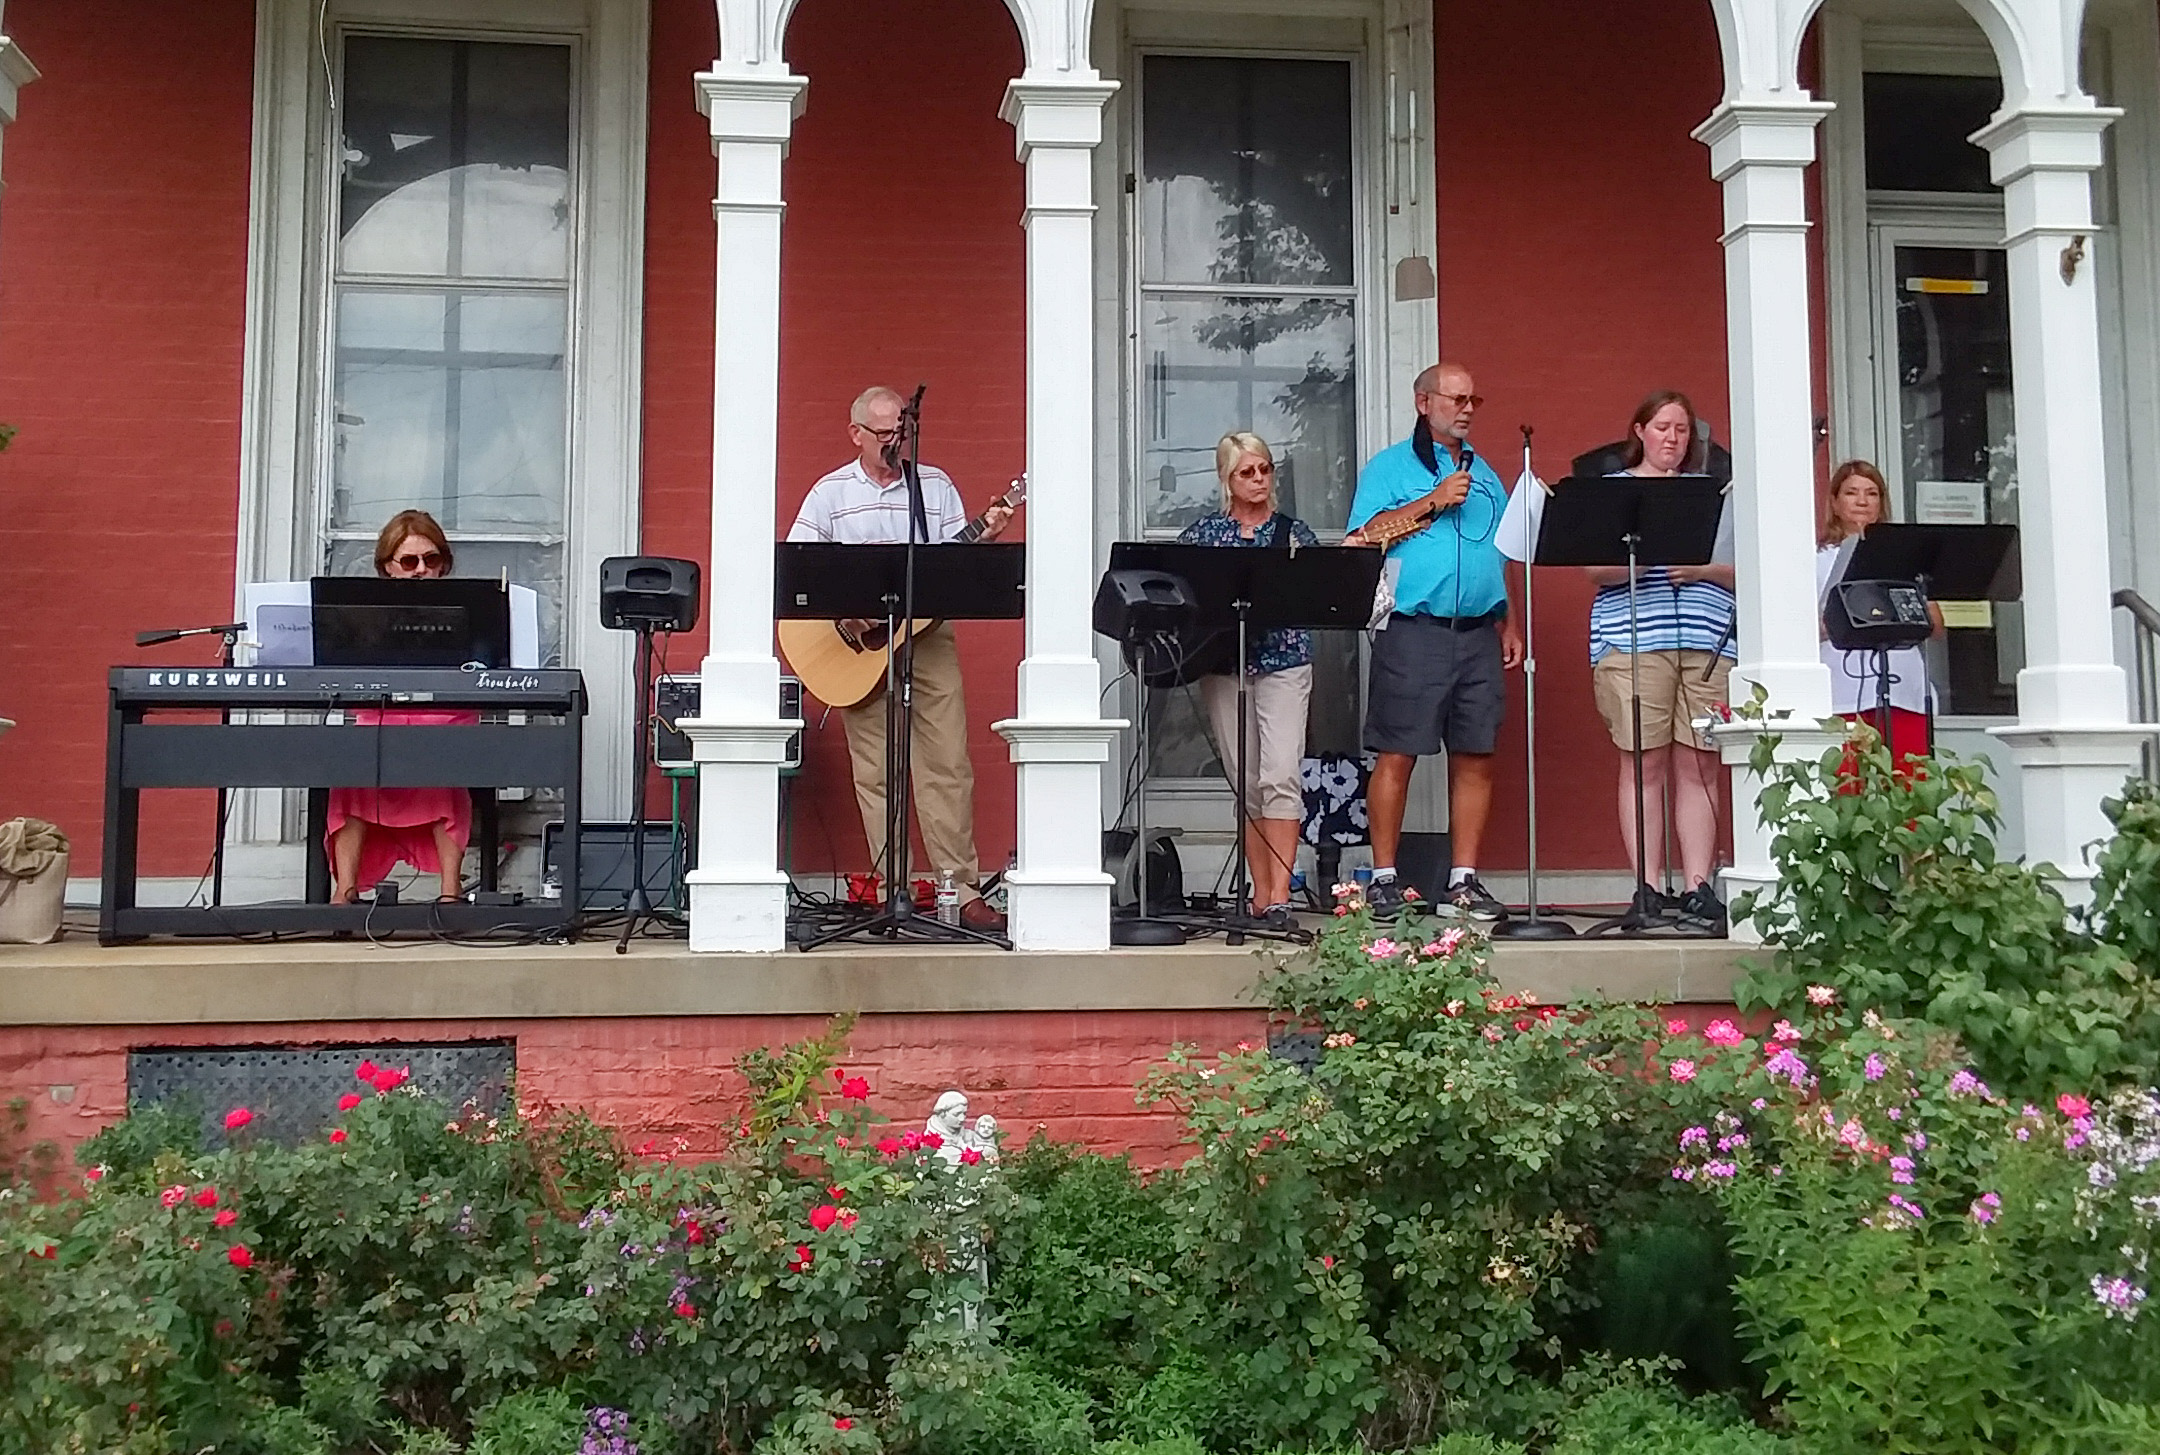 Evansville's All Saints Parish served close to 60 friends and neighbors around the St. Anthony campus with fresh produce during the Aug. 9 giveaway event. The All Saints Praise Band performed from the rectory porch during the giveaway. Submitted photos courtesy of All Saints Parish